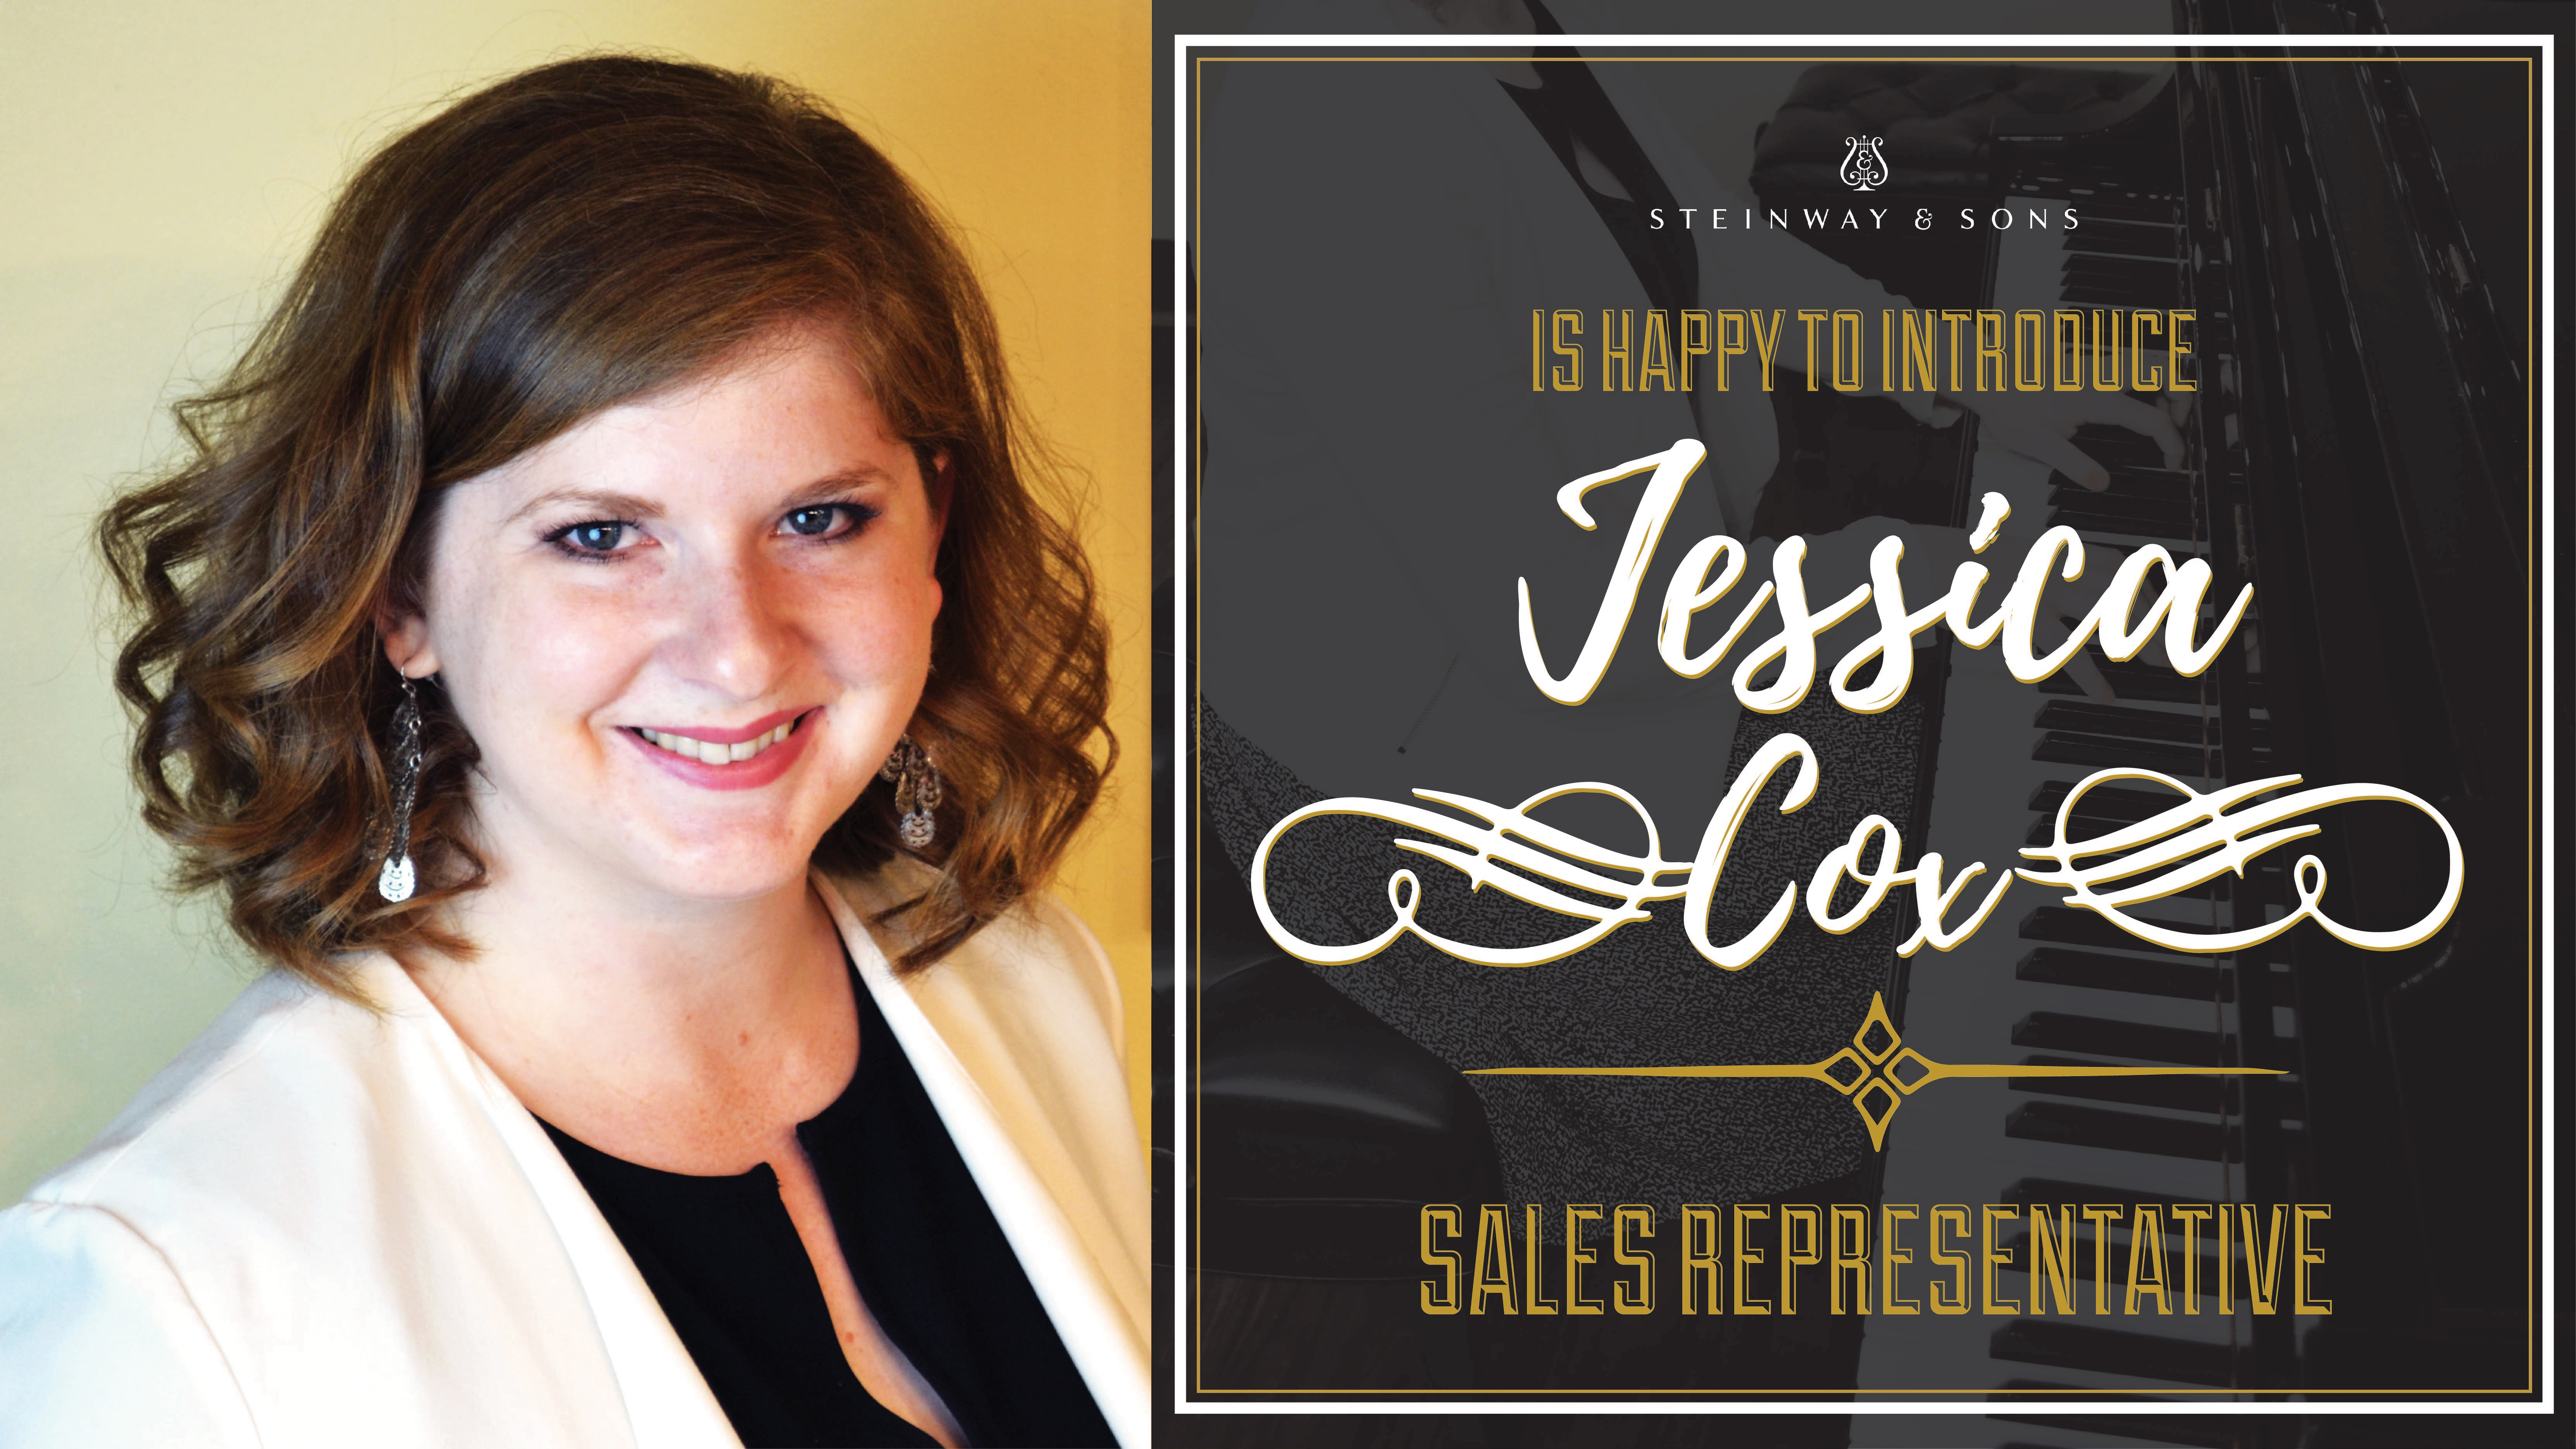 Steinway & Sons is happy to introduce Jessica Cox: Sales Representative